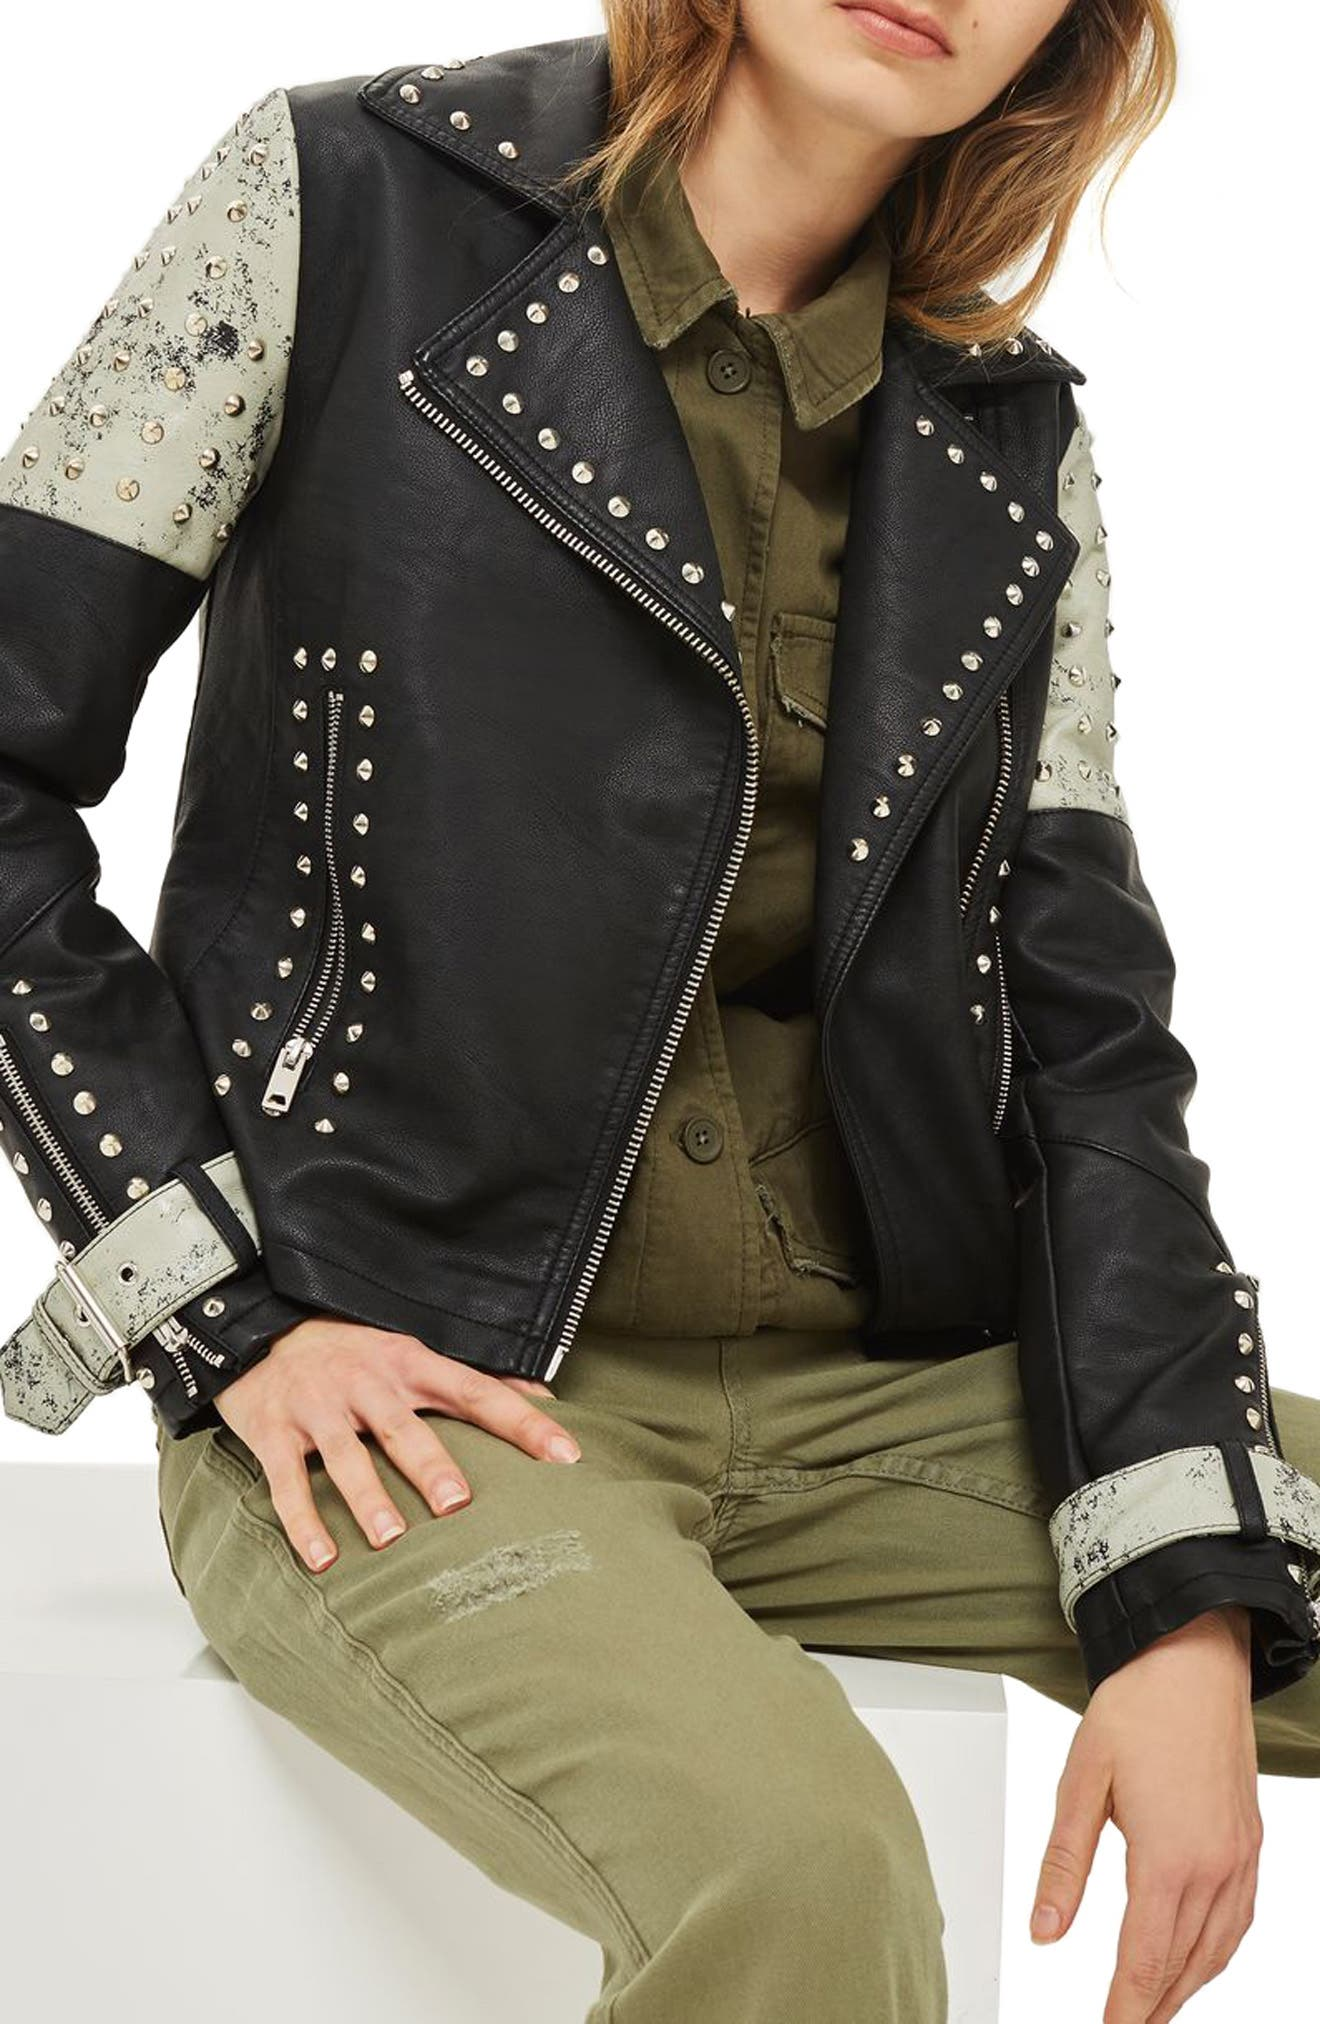 Maddox Painted & Studded Faux Leather Jacket,                             Alternate thumbnail 4, color,                             Black Multi